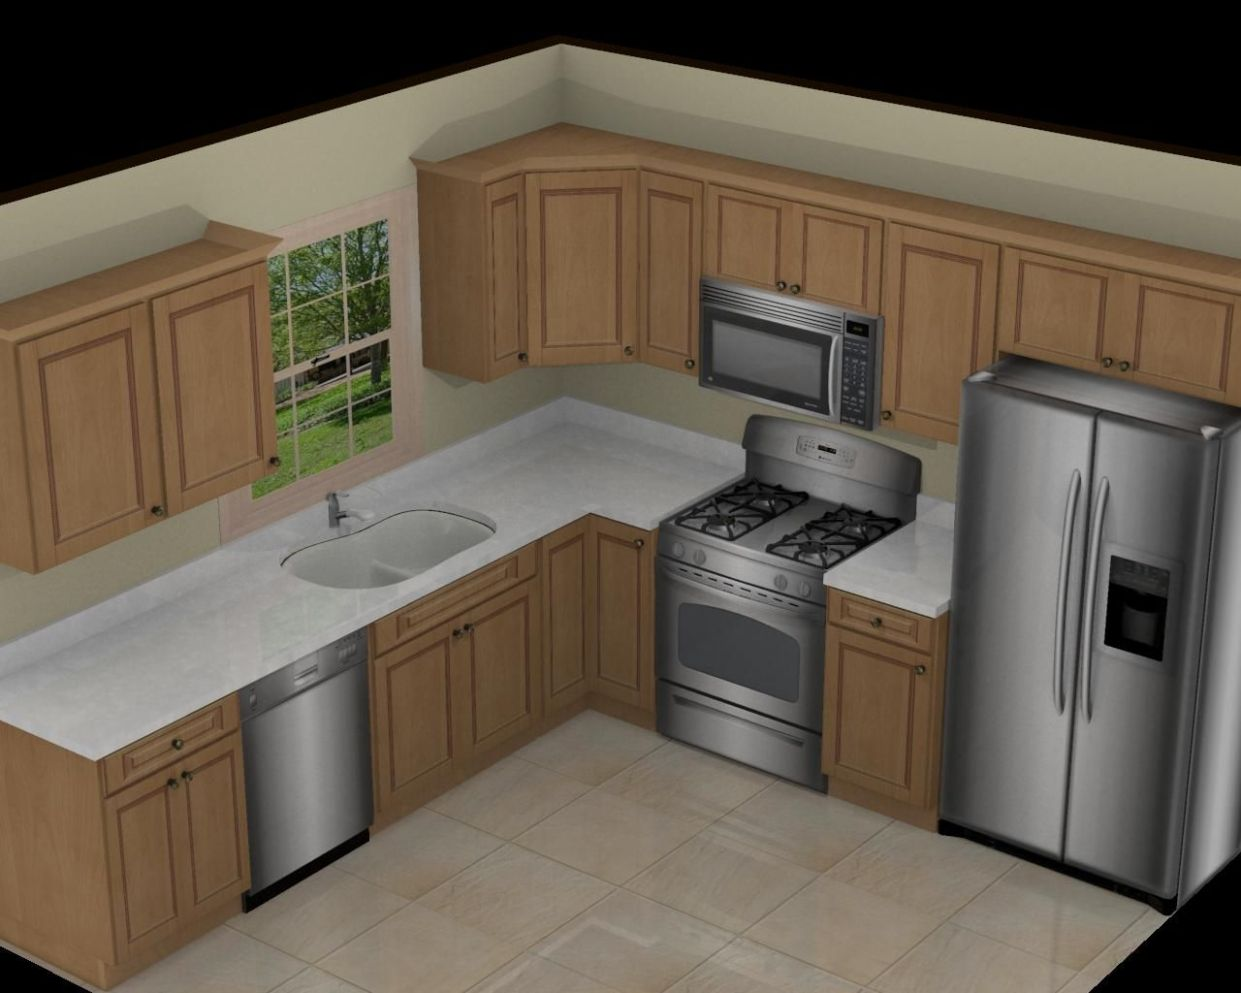 11x11 Kitchen Remodel (With images) | Small kitchen layouts, Small ..